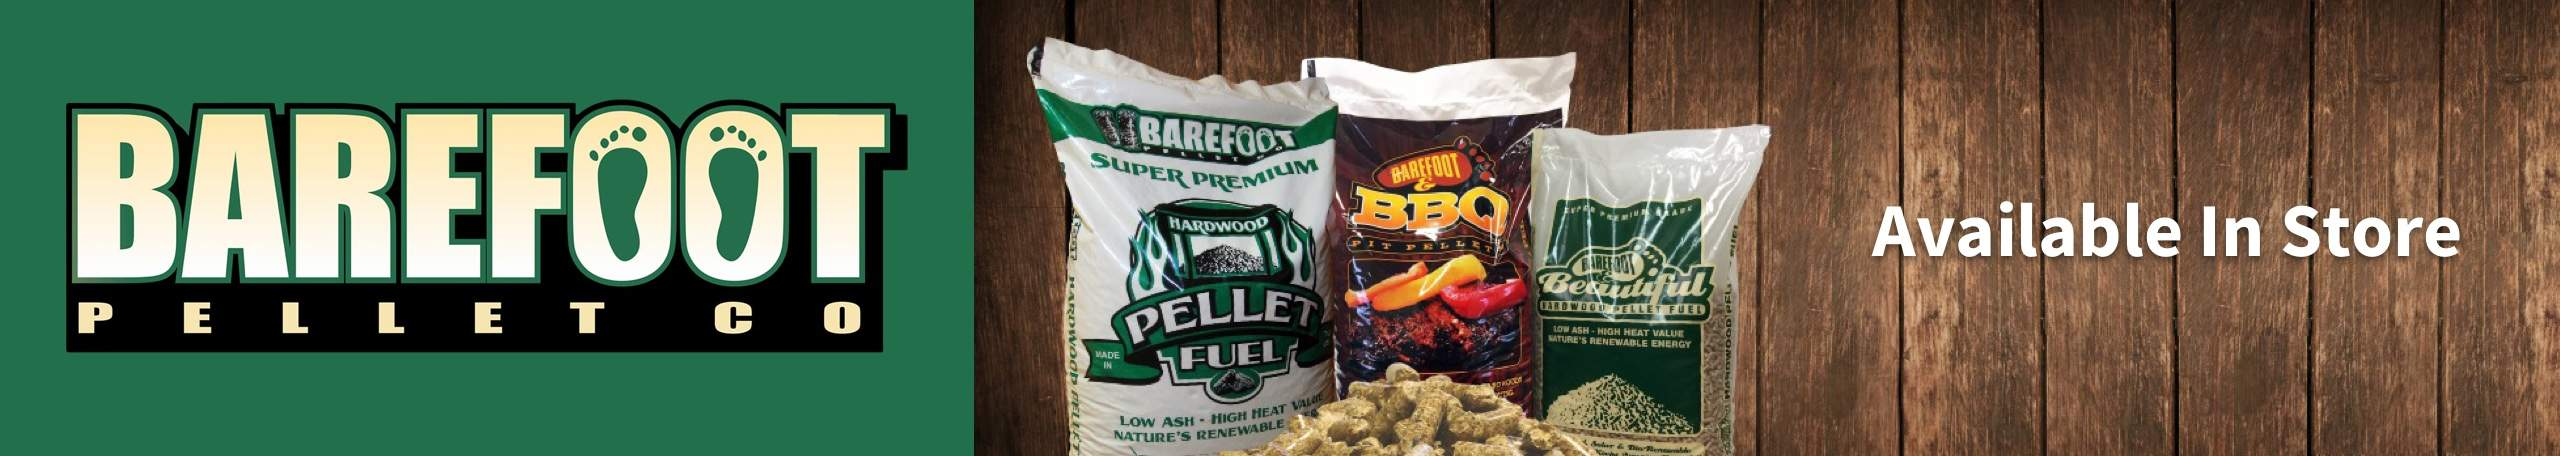 Shop Local with Barefoot Pellets at Arnot Building Supply - Locally-made pellets